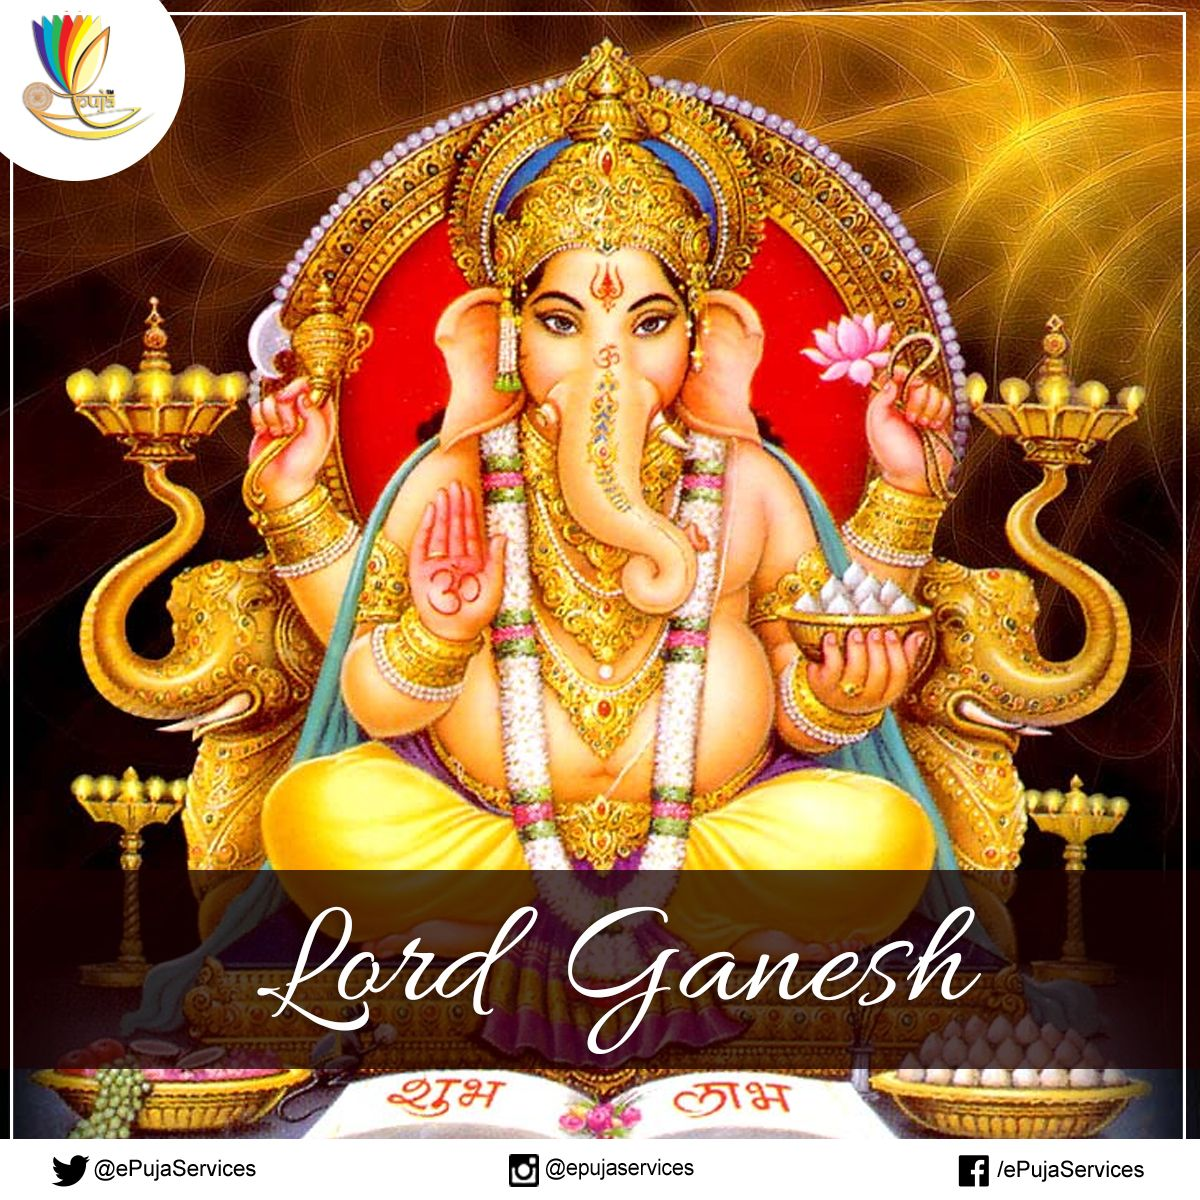 Lord Ganesha Is One Of The Five Prime Hindu Deities Whose Idolatry Is Glorified As The Panchayatanapuja Ganesha Hindu Gods Lord Ganesha